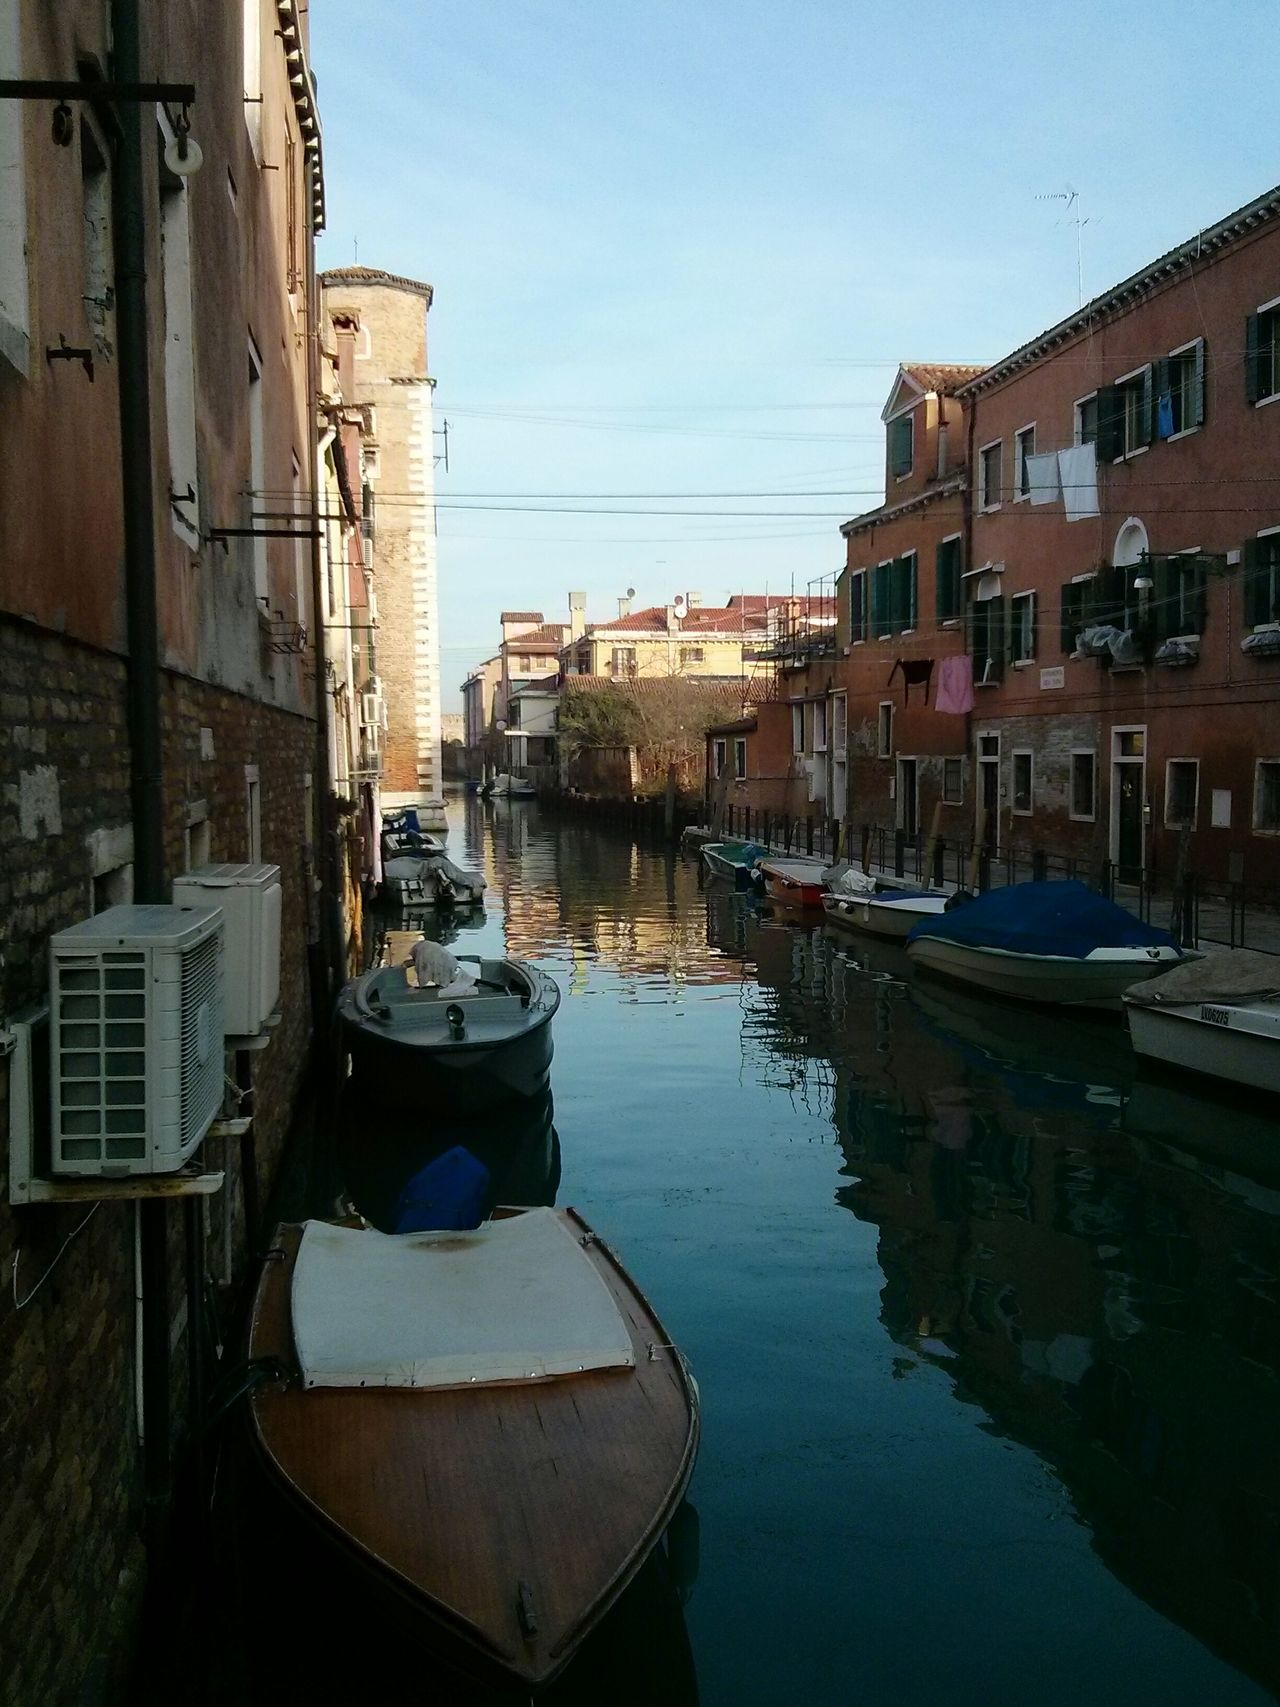 Canals of Venice. · Venezia Italy Venice Canals Channels Water Boats Urban Landscape Learn & Shoot: Leading Lines